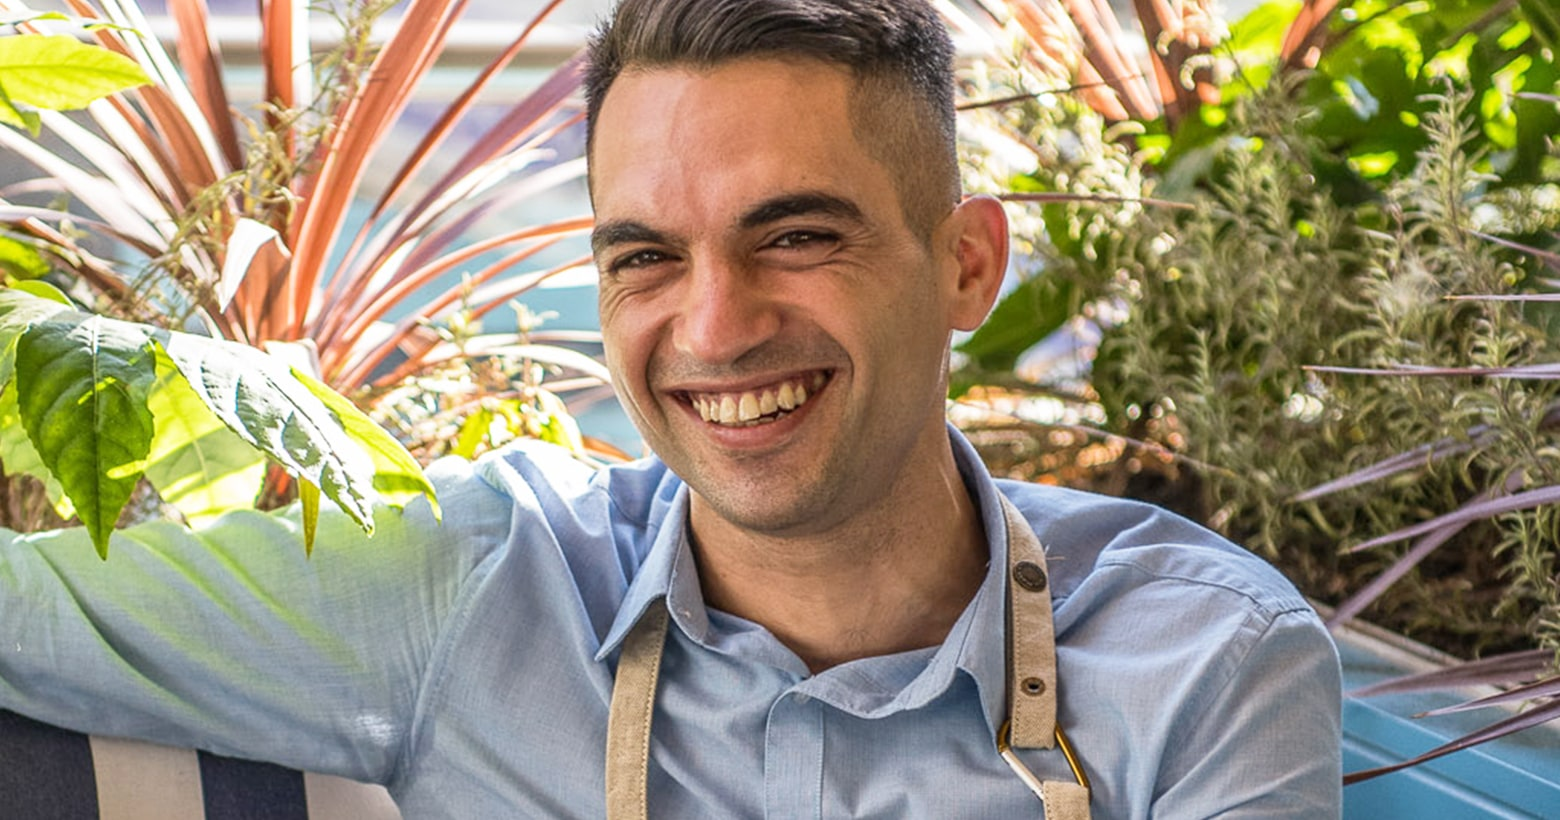 A WORD WITH BRISTOL'S RESTAURANT MANAGER, JOHNNY